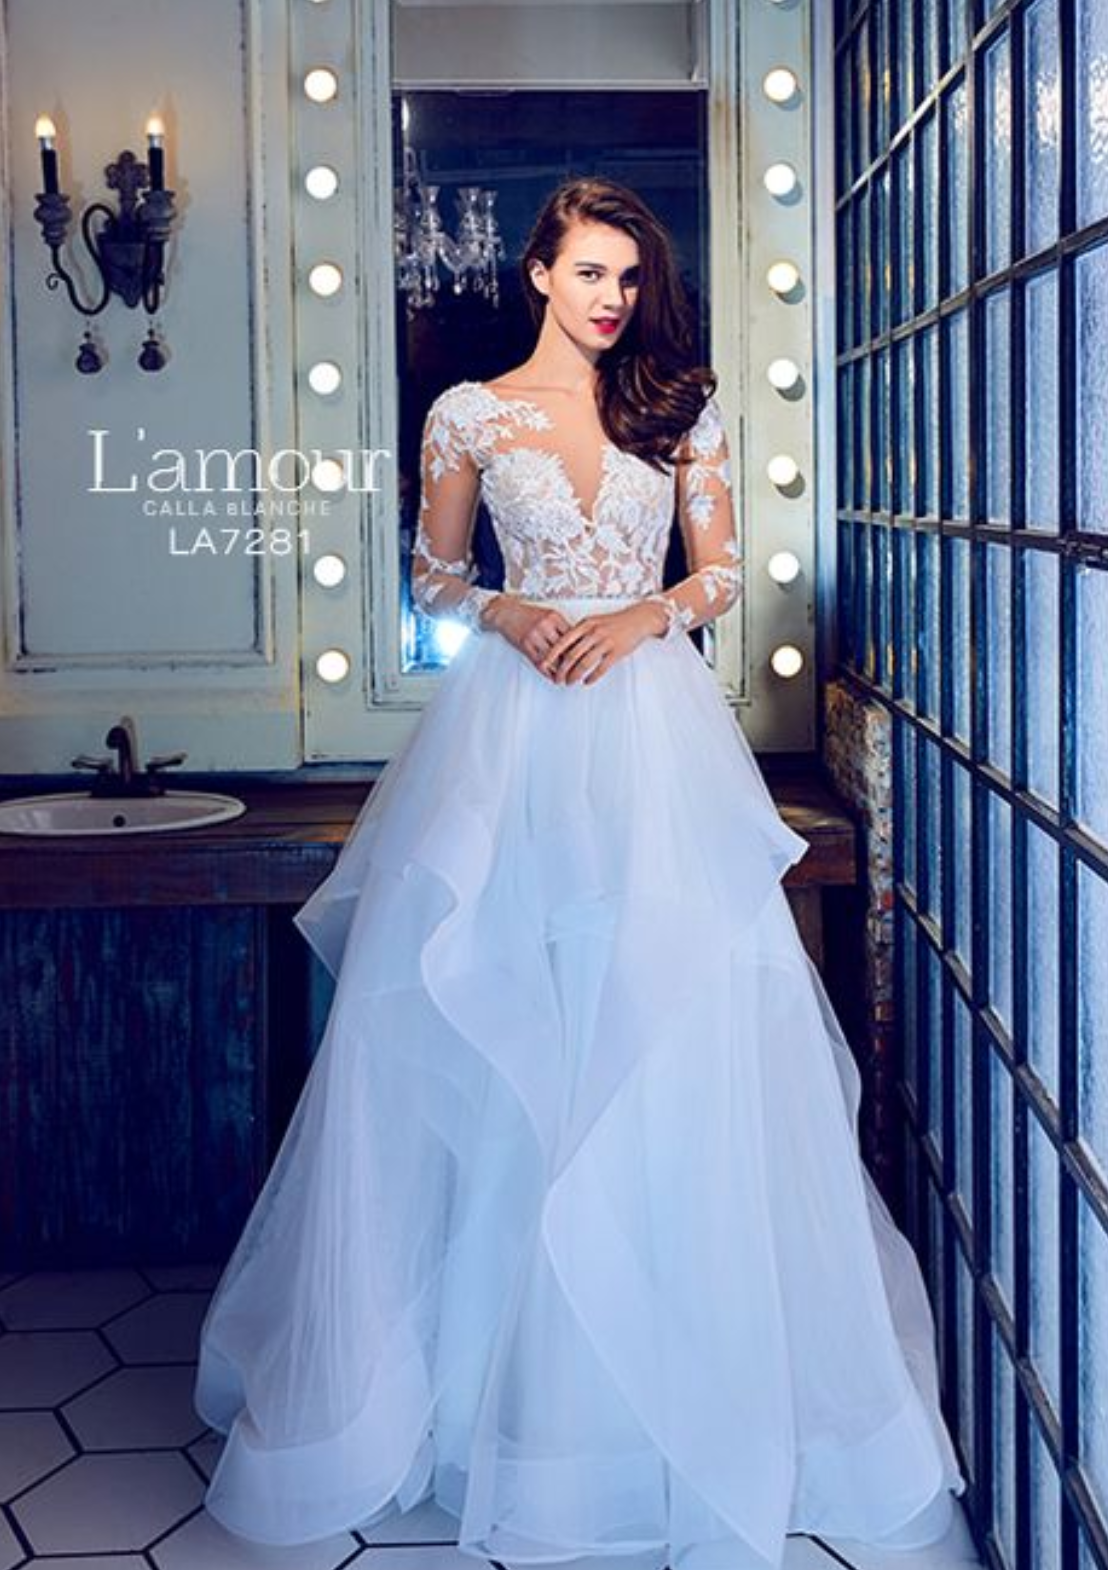 L'Amour by Calla Blanche LA7281 Laney Affordable bridal